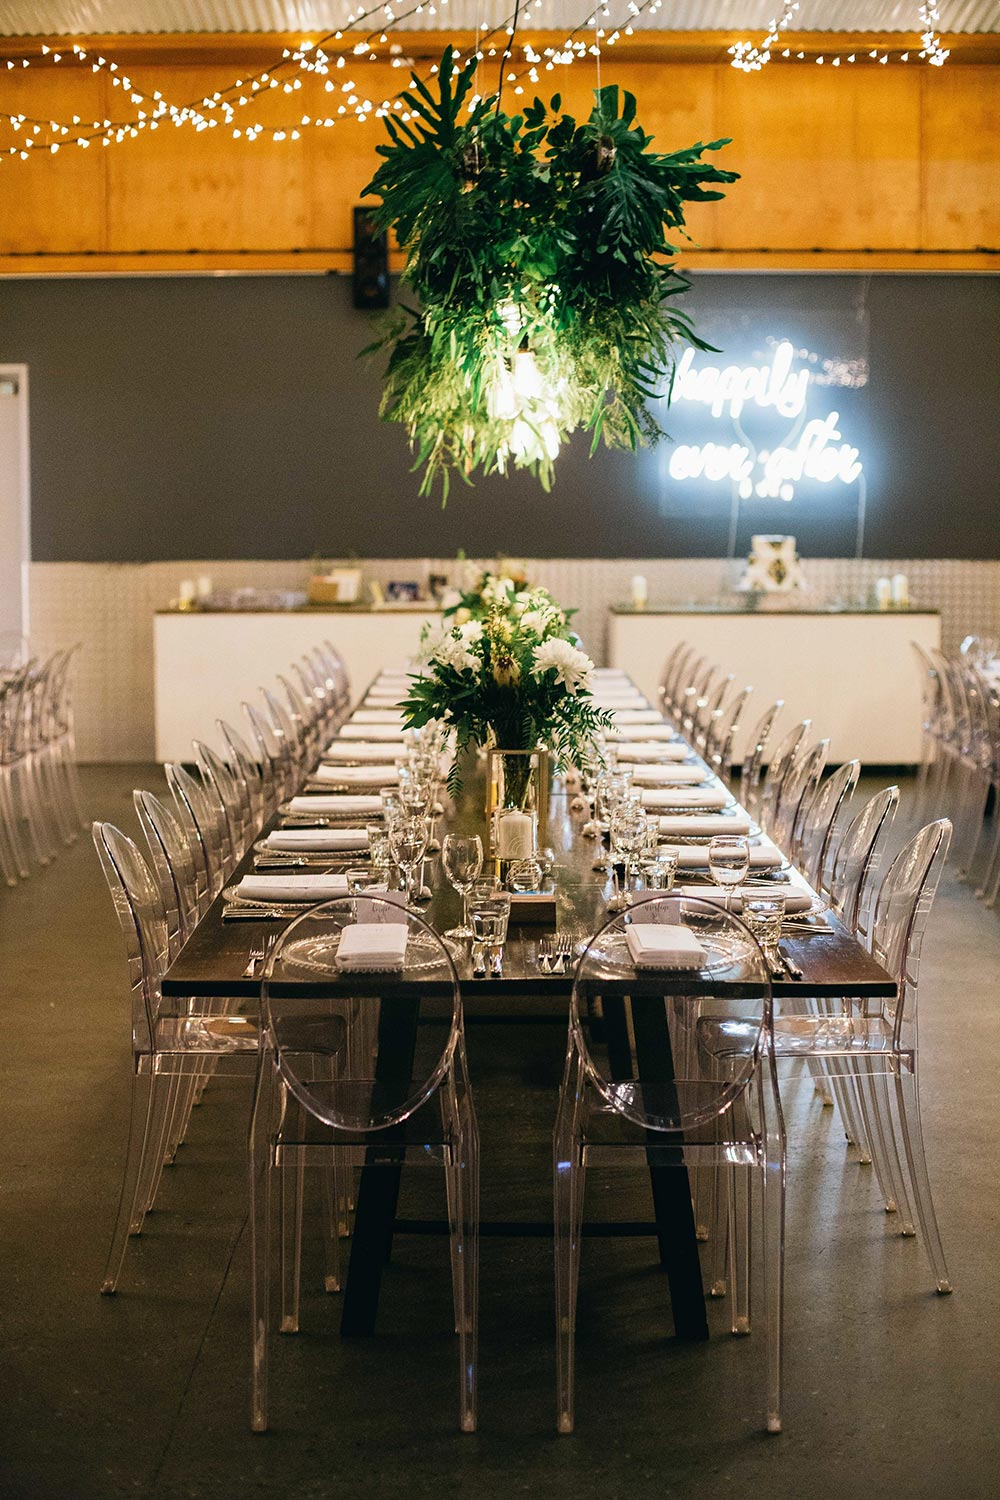 industrial wedding reception with suspended greenery, neon signage and lucite chairs